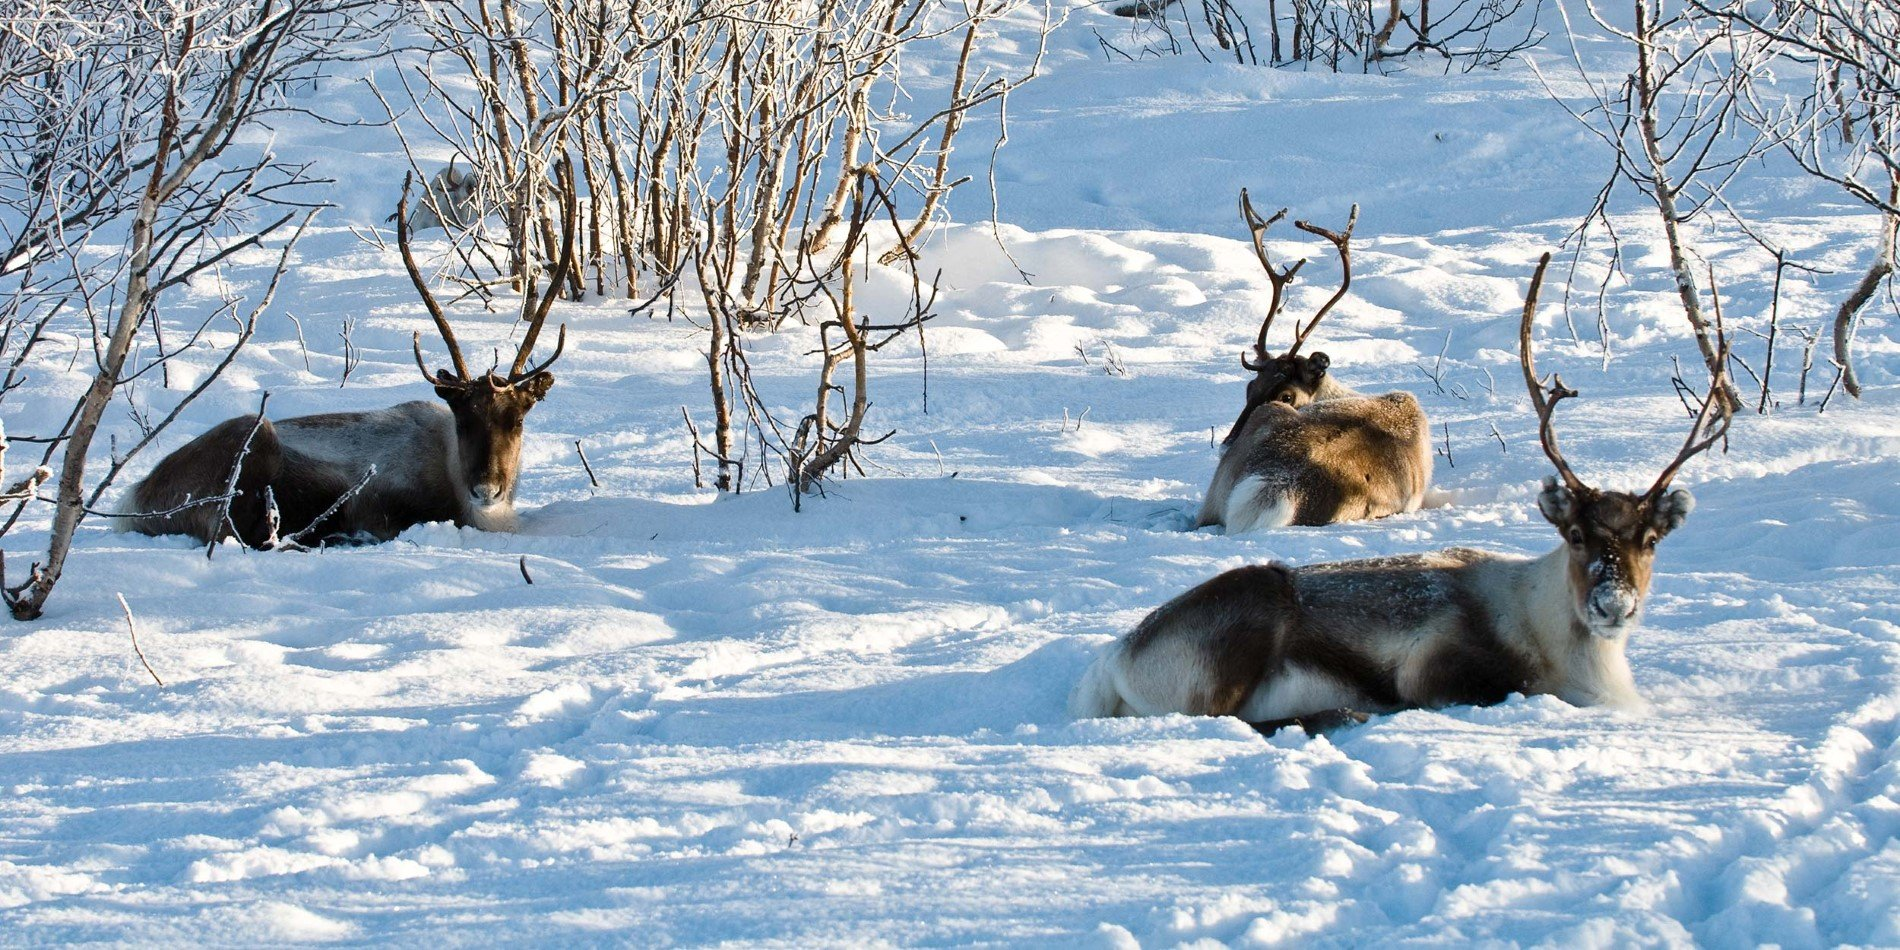 Reindeer is well adapted to live in the Northern hemisphere